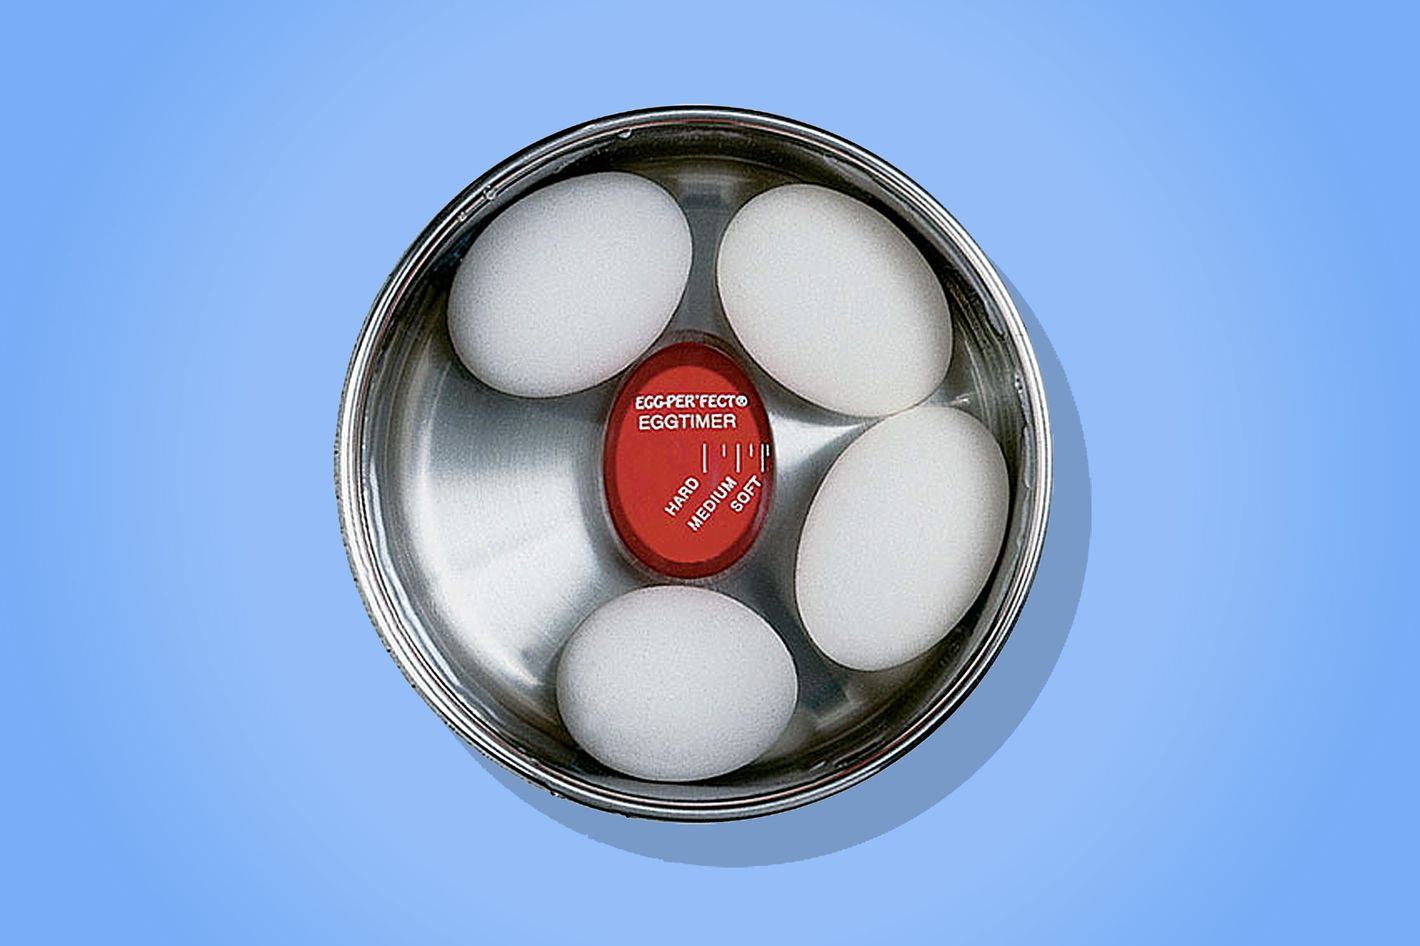 Best egg timer Norpro